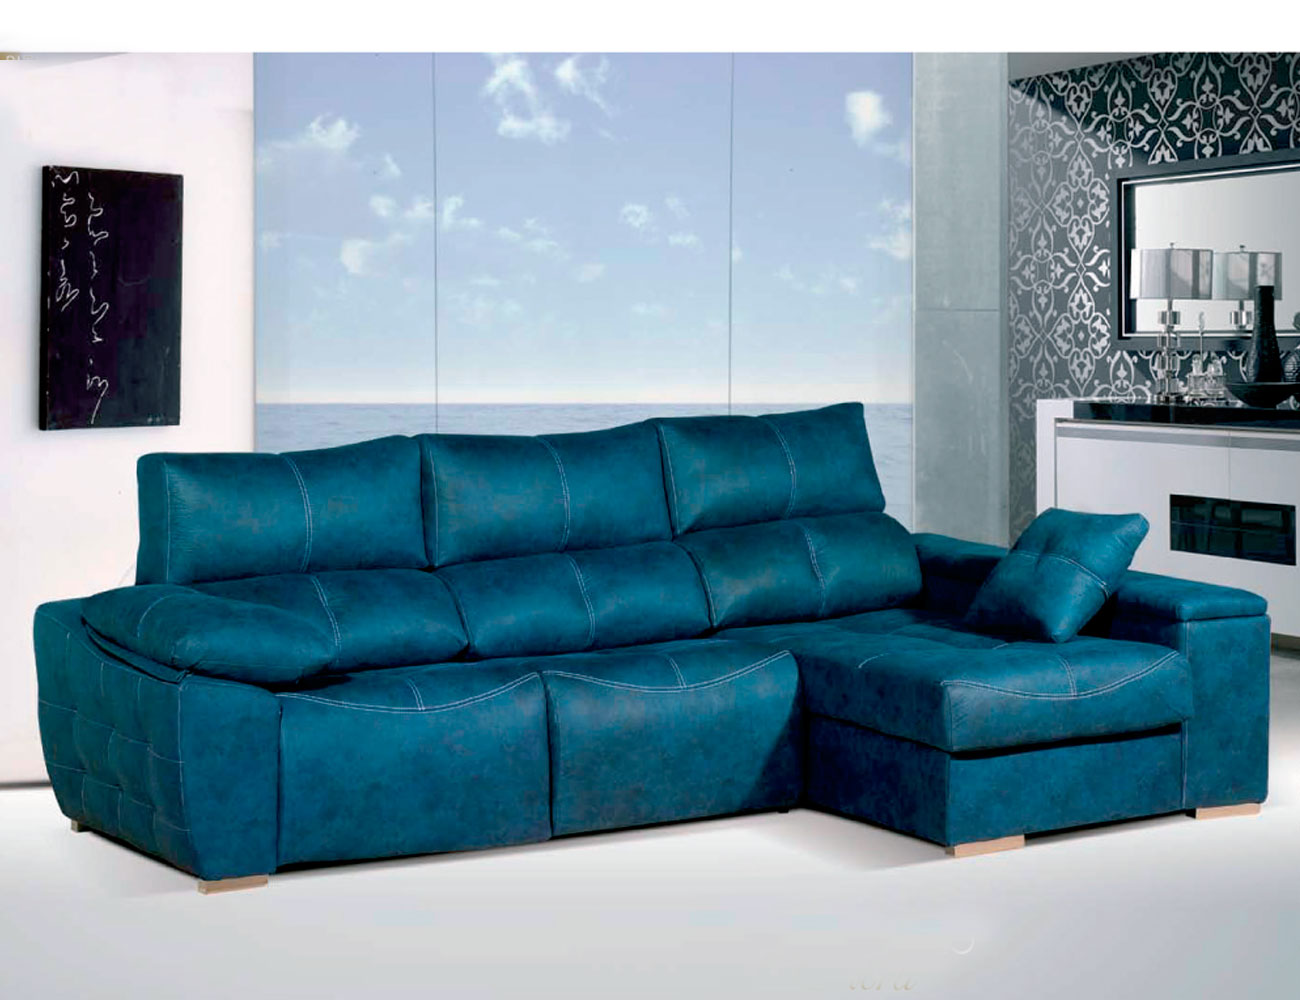 Sofa chaiselongue relax 2 motores anti manchas turquesa40